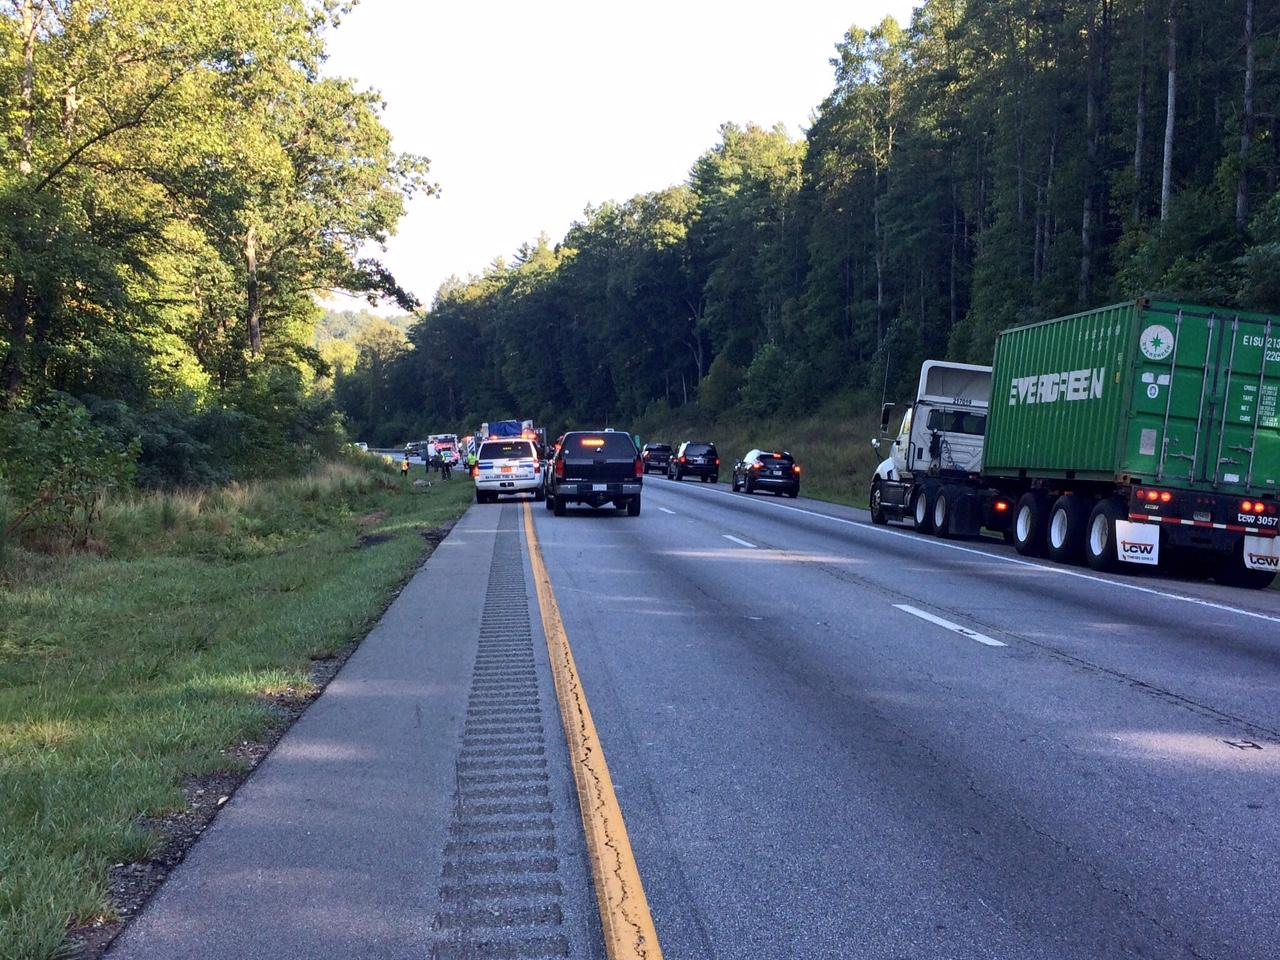 Highway Patrol confirms one person has died after a wreck along Interstate 26 WB, near Exit 37, on Thursday morning. (Photo credit: WLOS Staff)